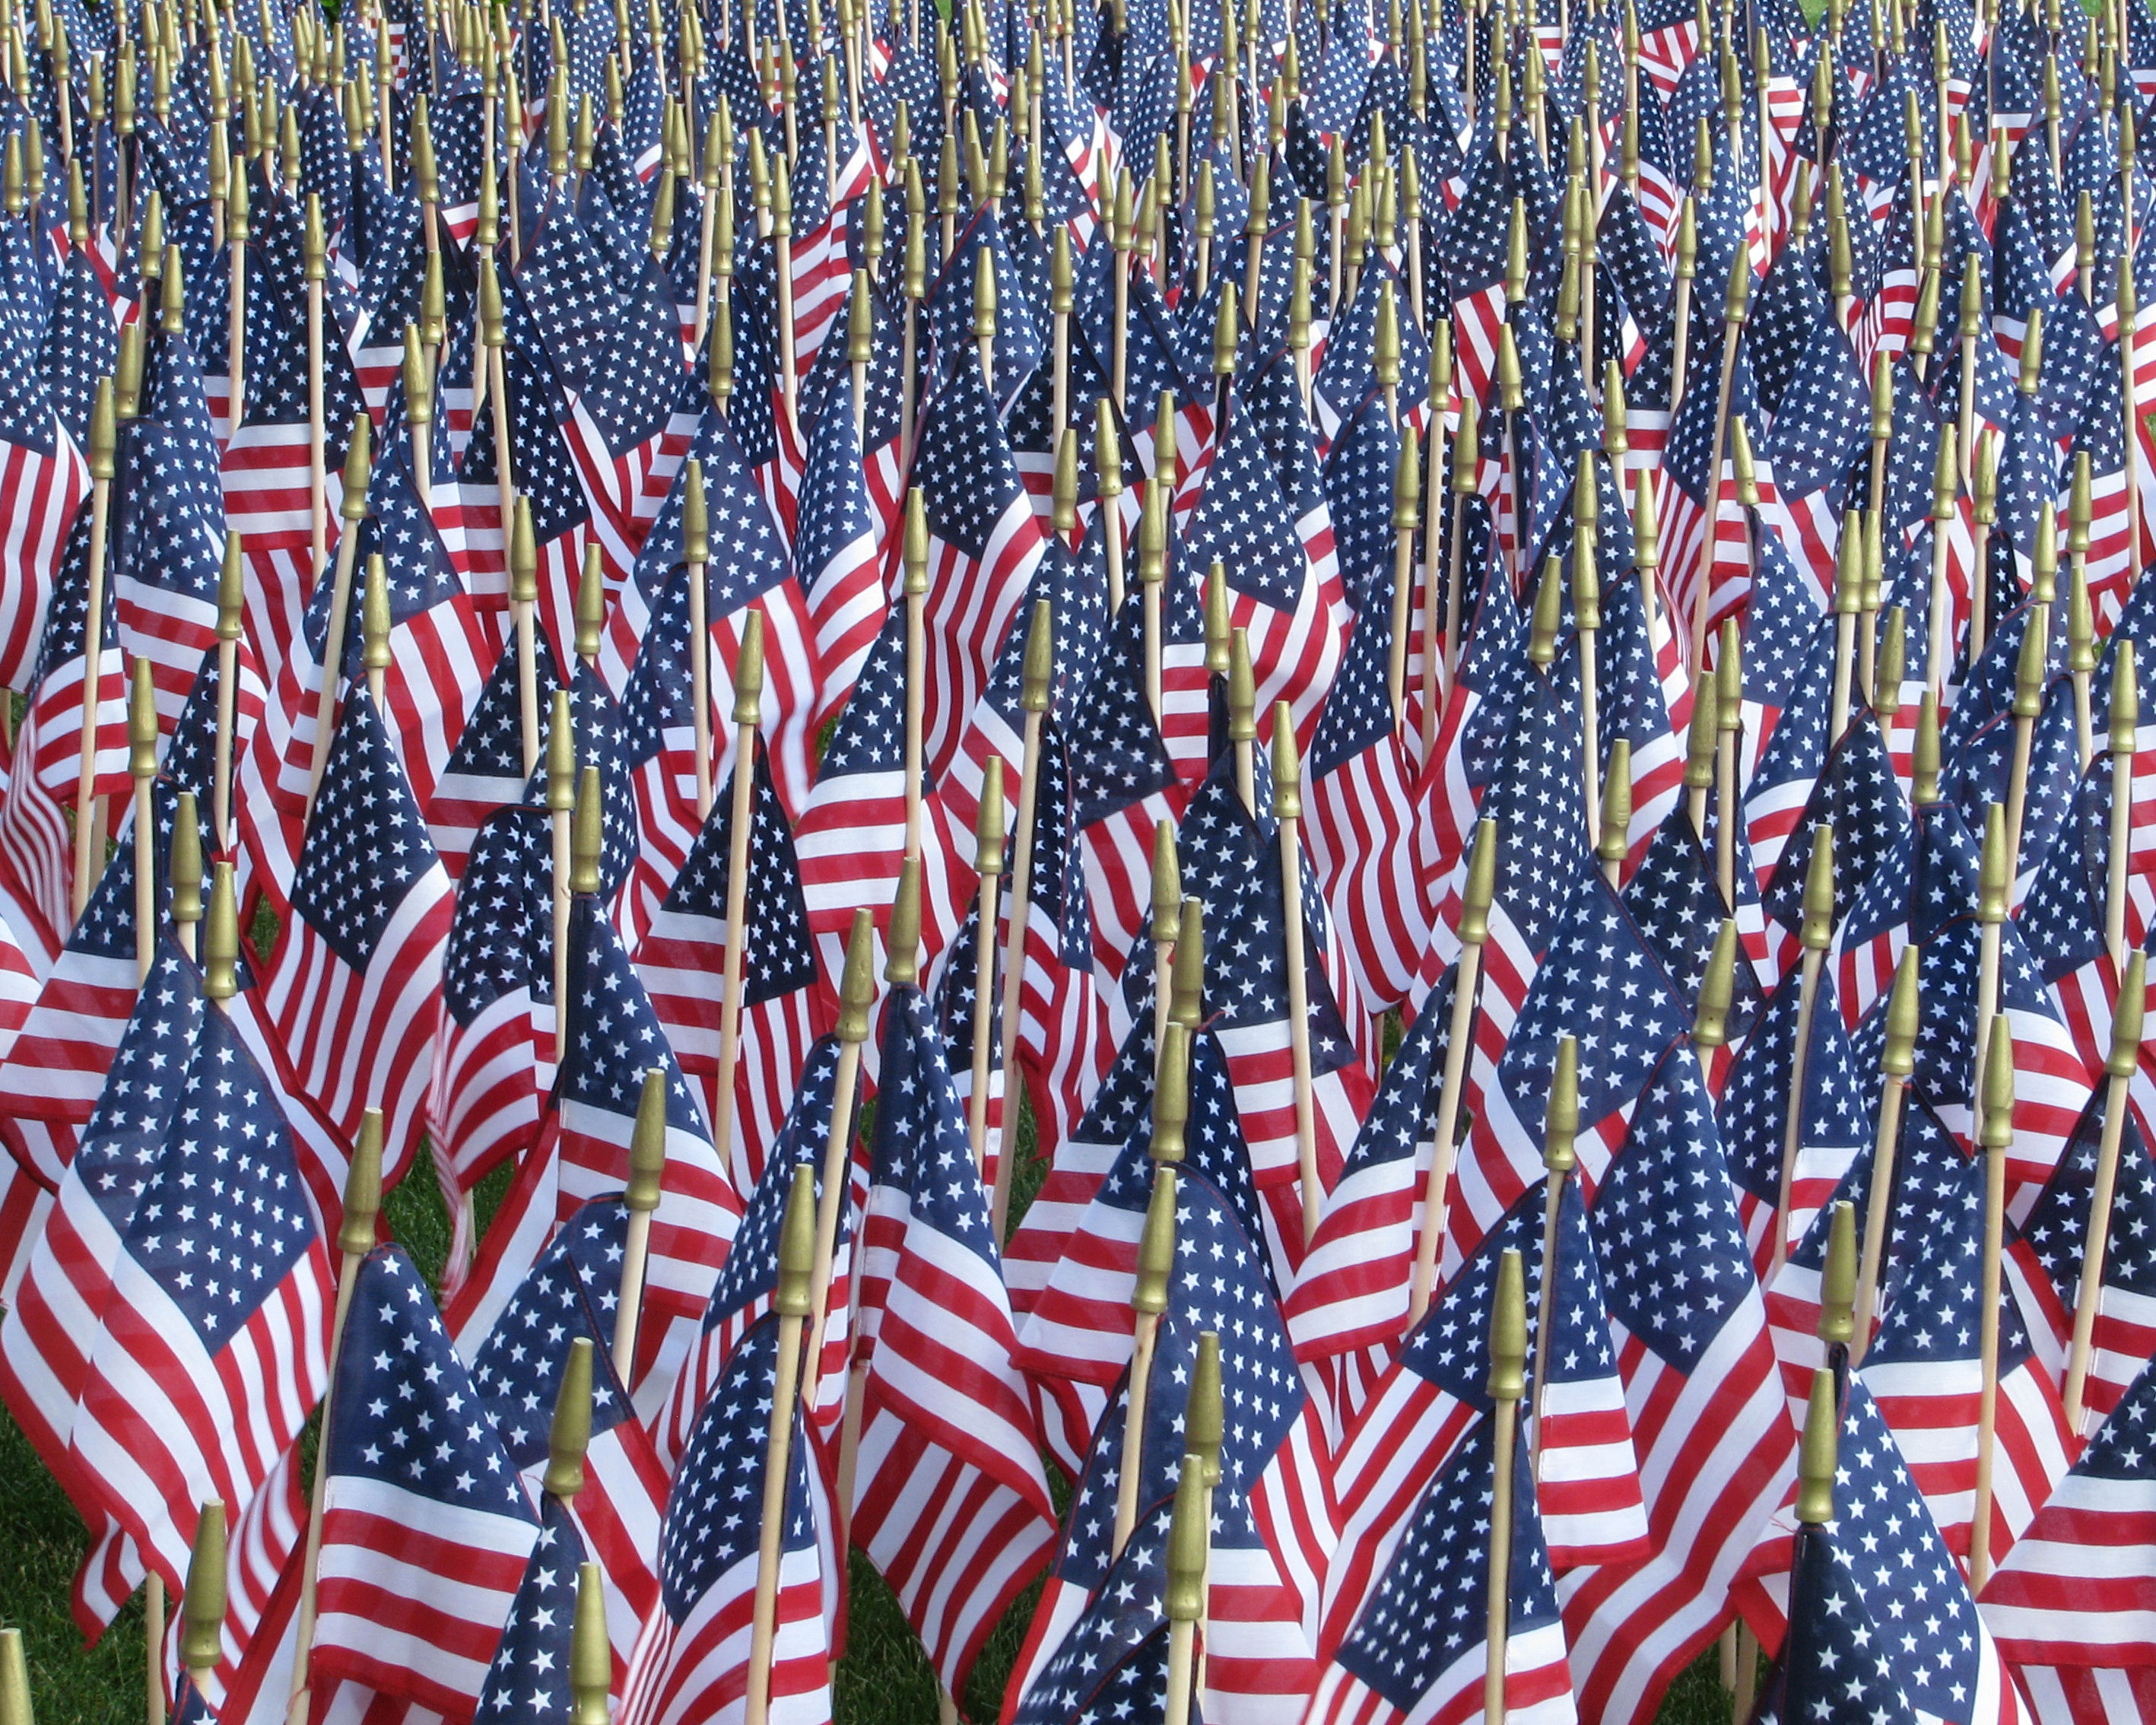 247 Years Of American Flags, Visualized – Co.Design